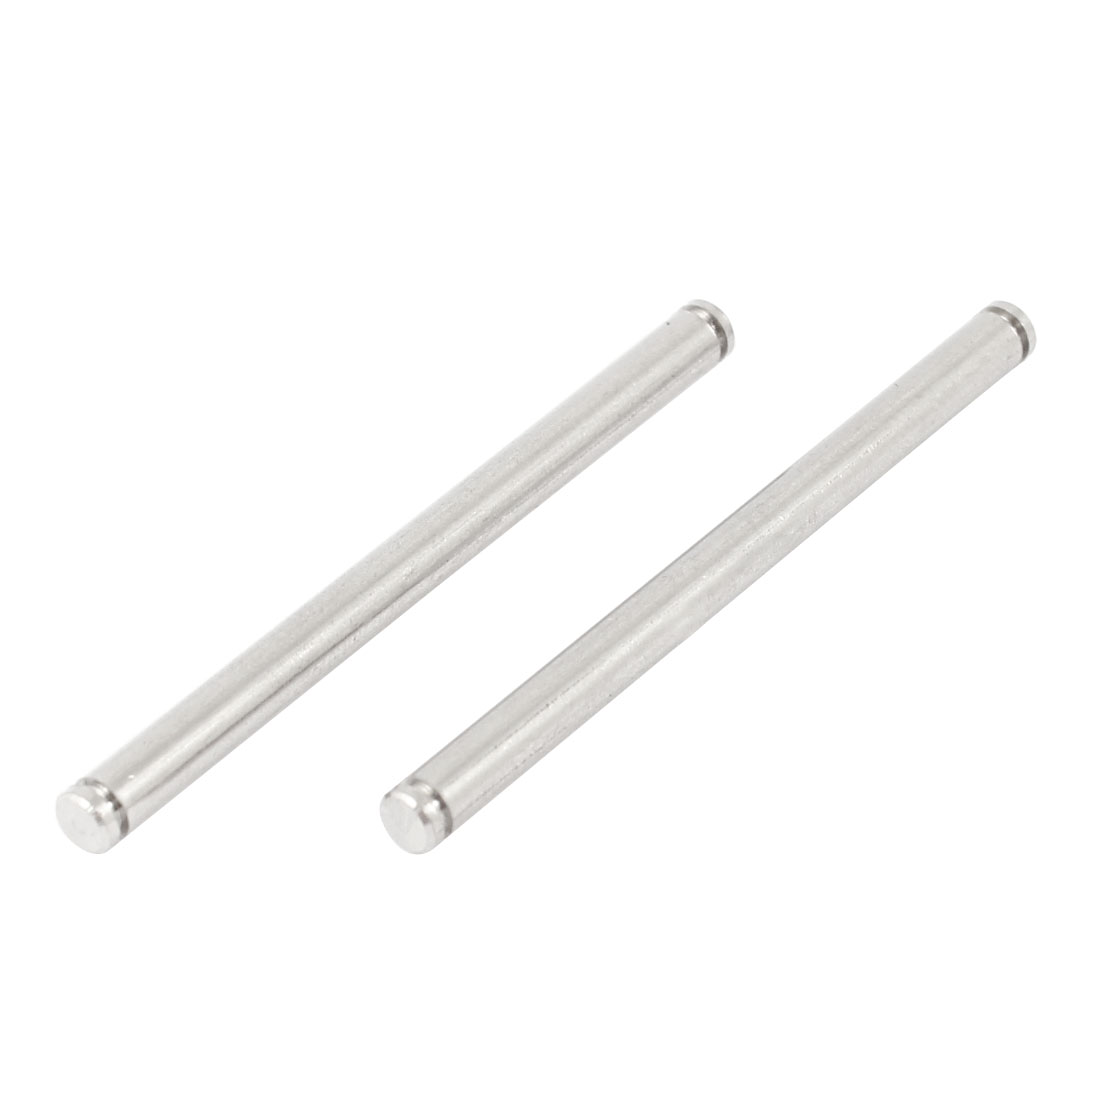 2PCS 08069 Steel Front Upper Suspension Arm Pin B 43mm for 1/10 94188 RC Car